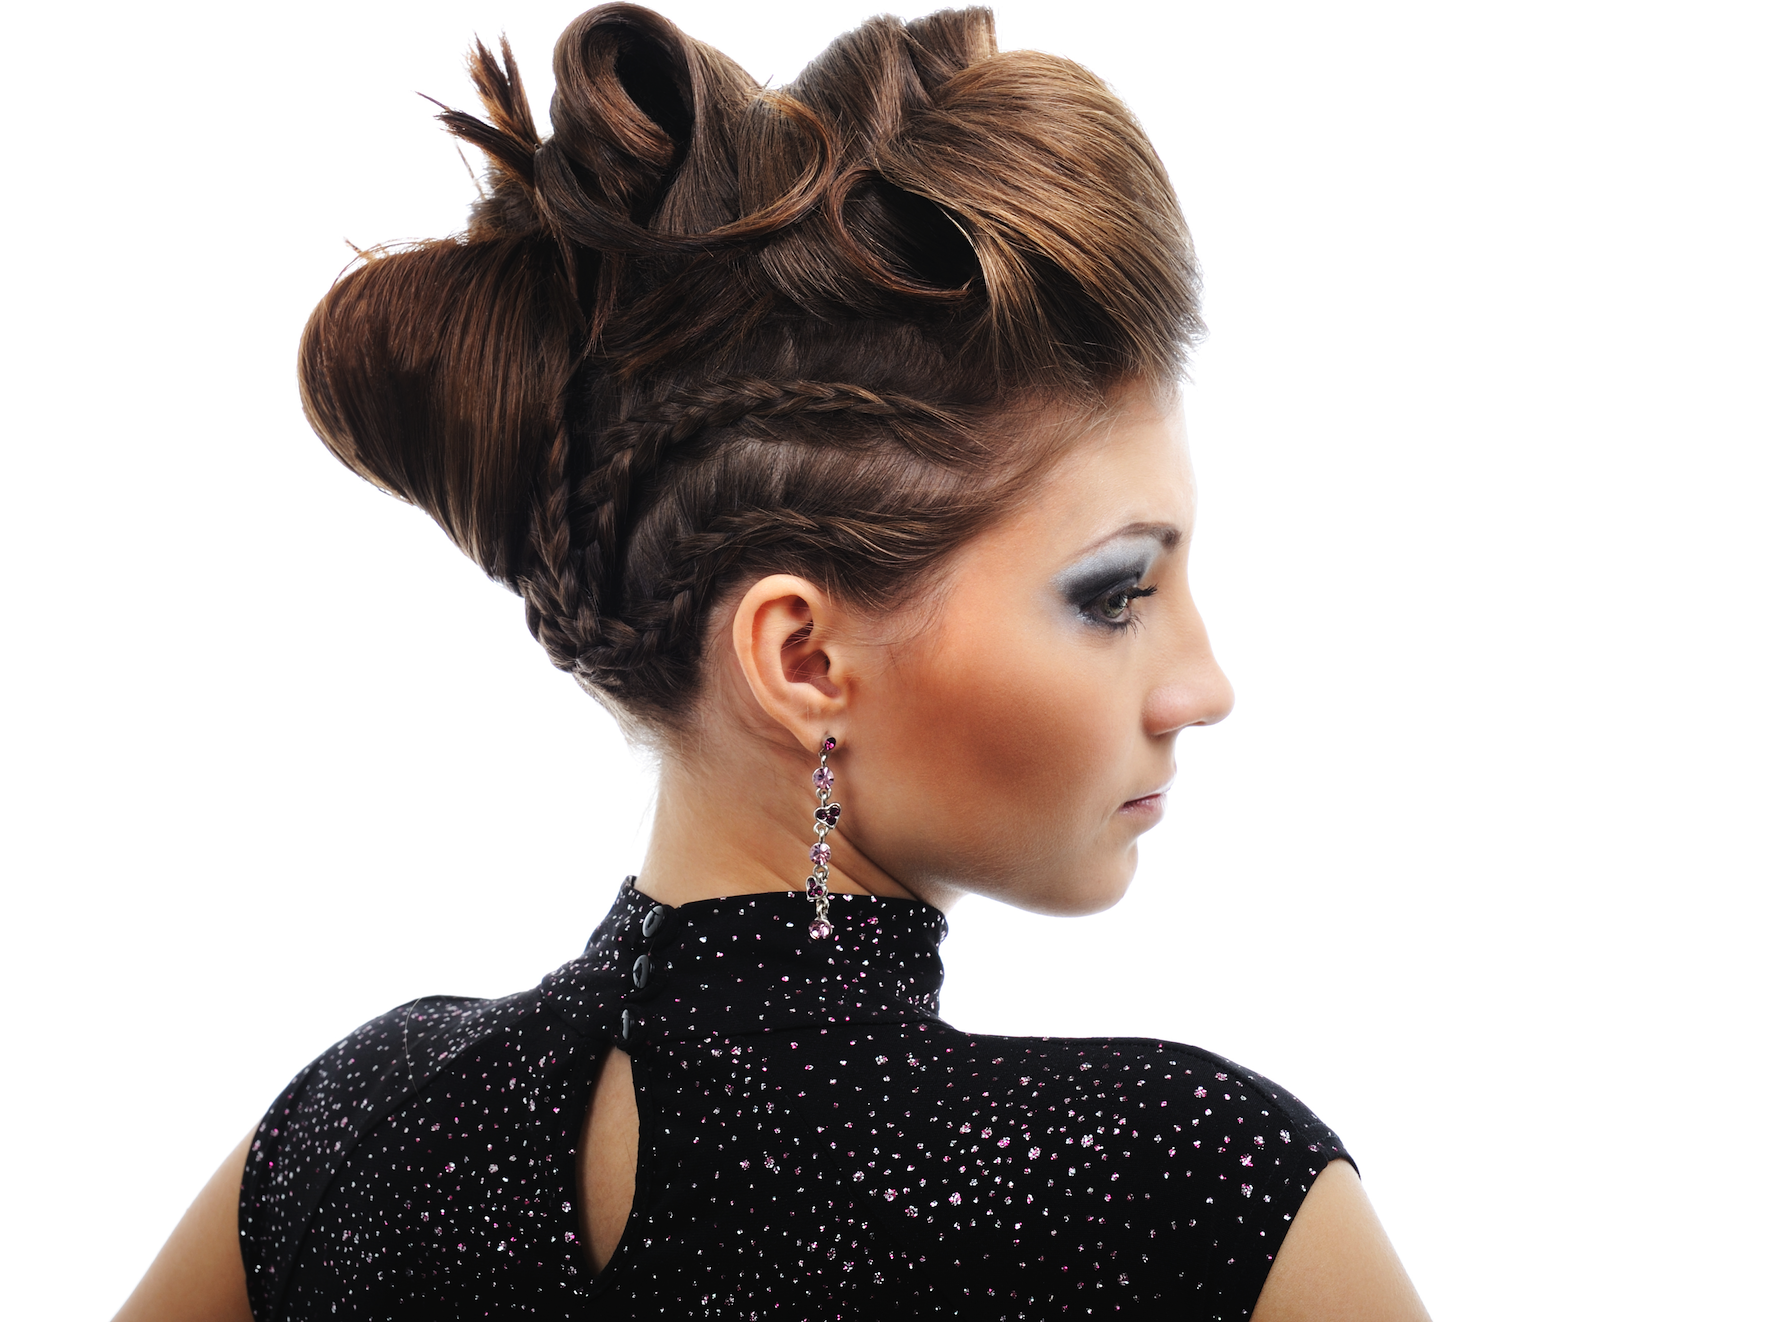 Bump It Up Add This Cool Hairdo With A Retro Vibe To Update Or